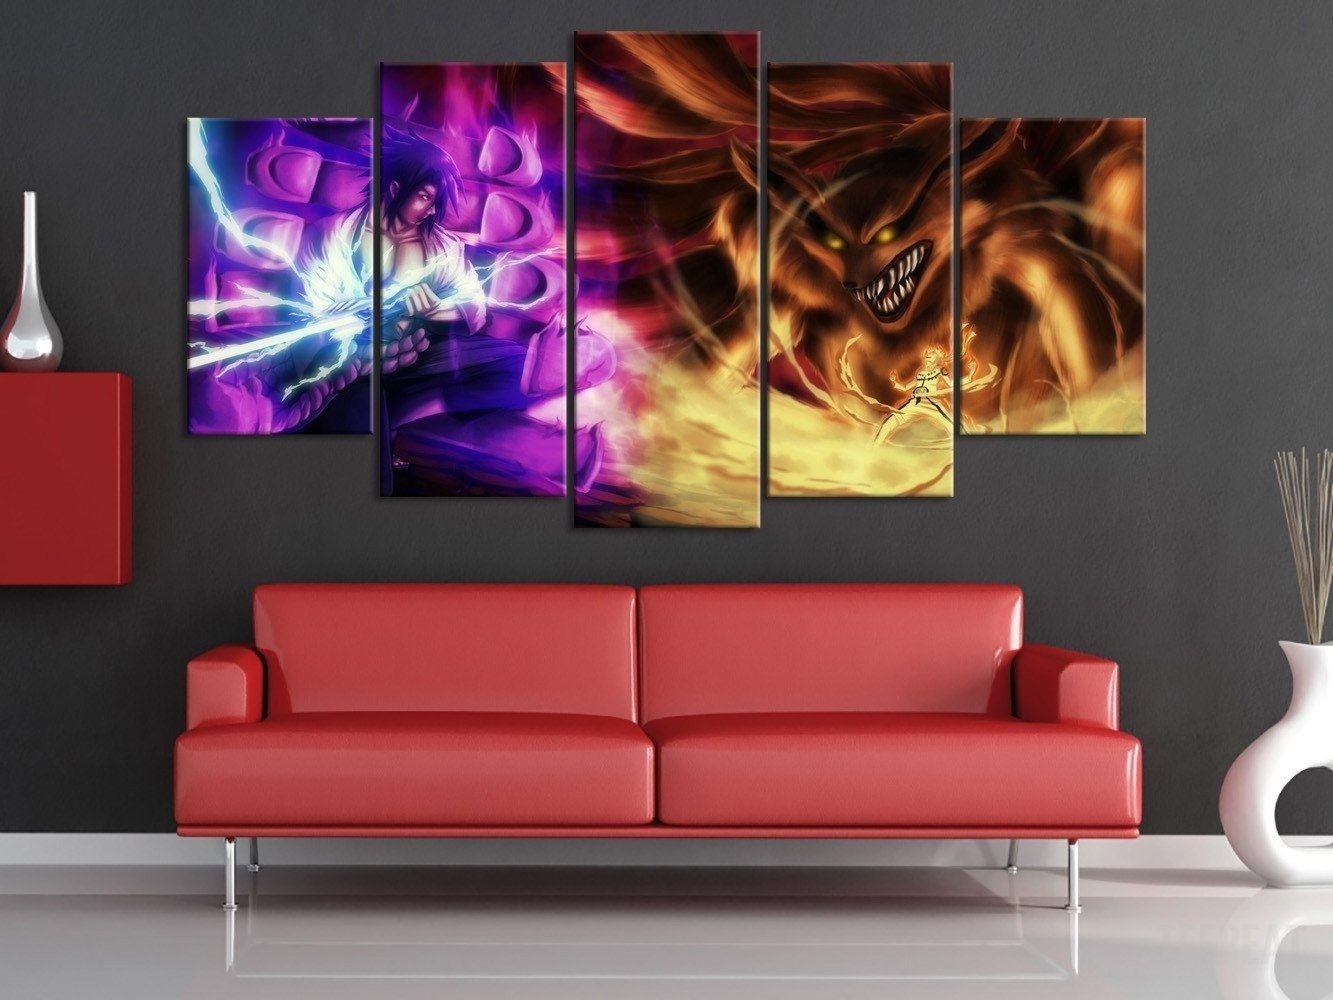 Susano Vs 9 Tail Beast 5 Piece Canvas | Cinema Themed Wall In Most Popular Framed Canvas Art Prints (View 13 of 15)